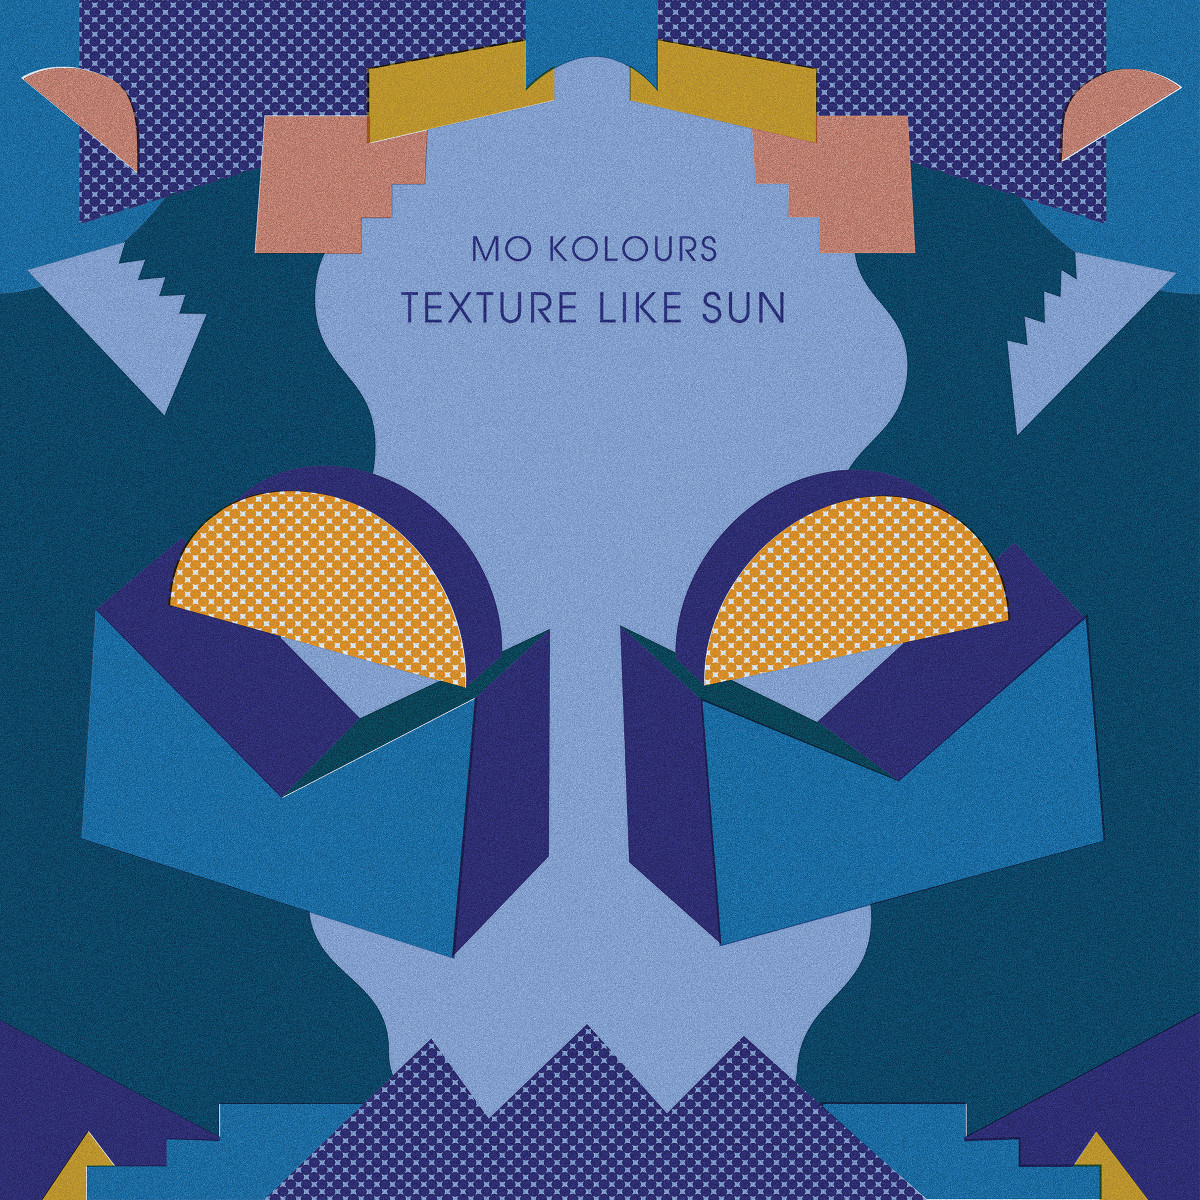 Mo Kolours Announces New LP 'Texture Like Sun'